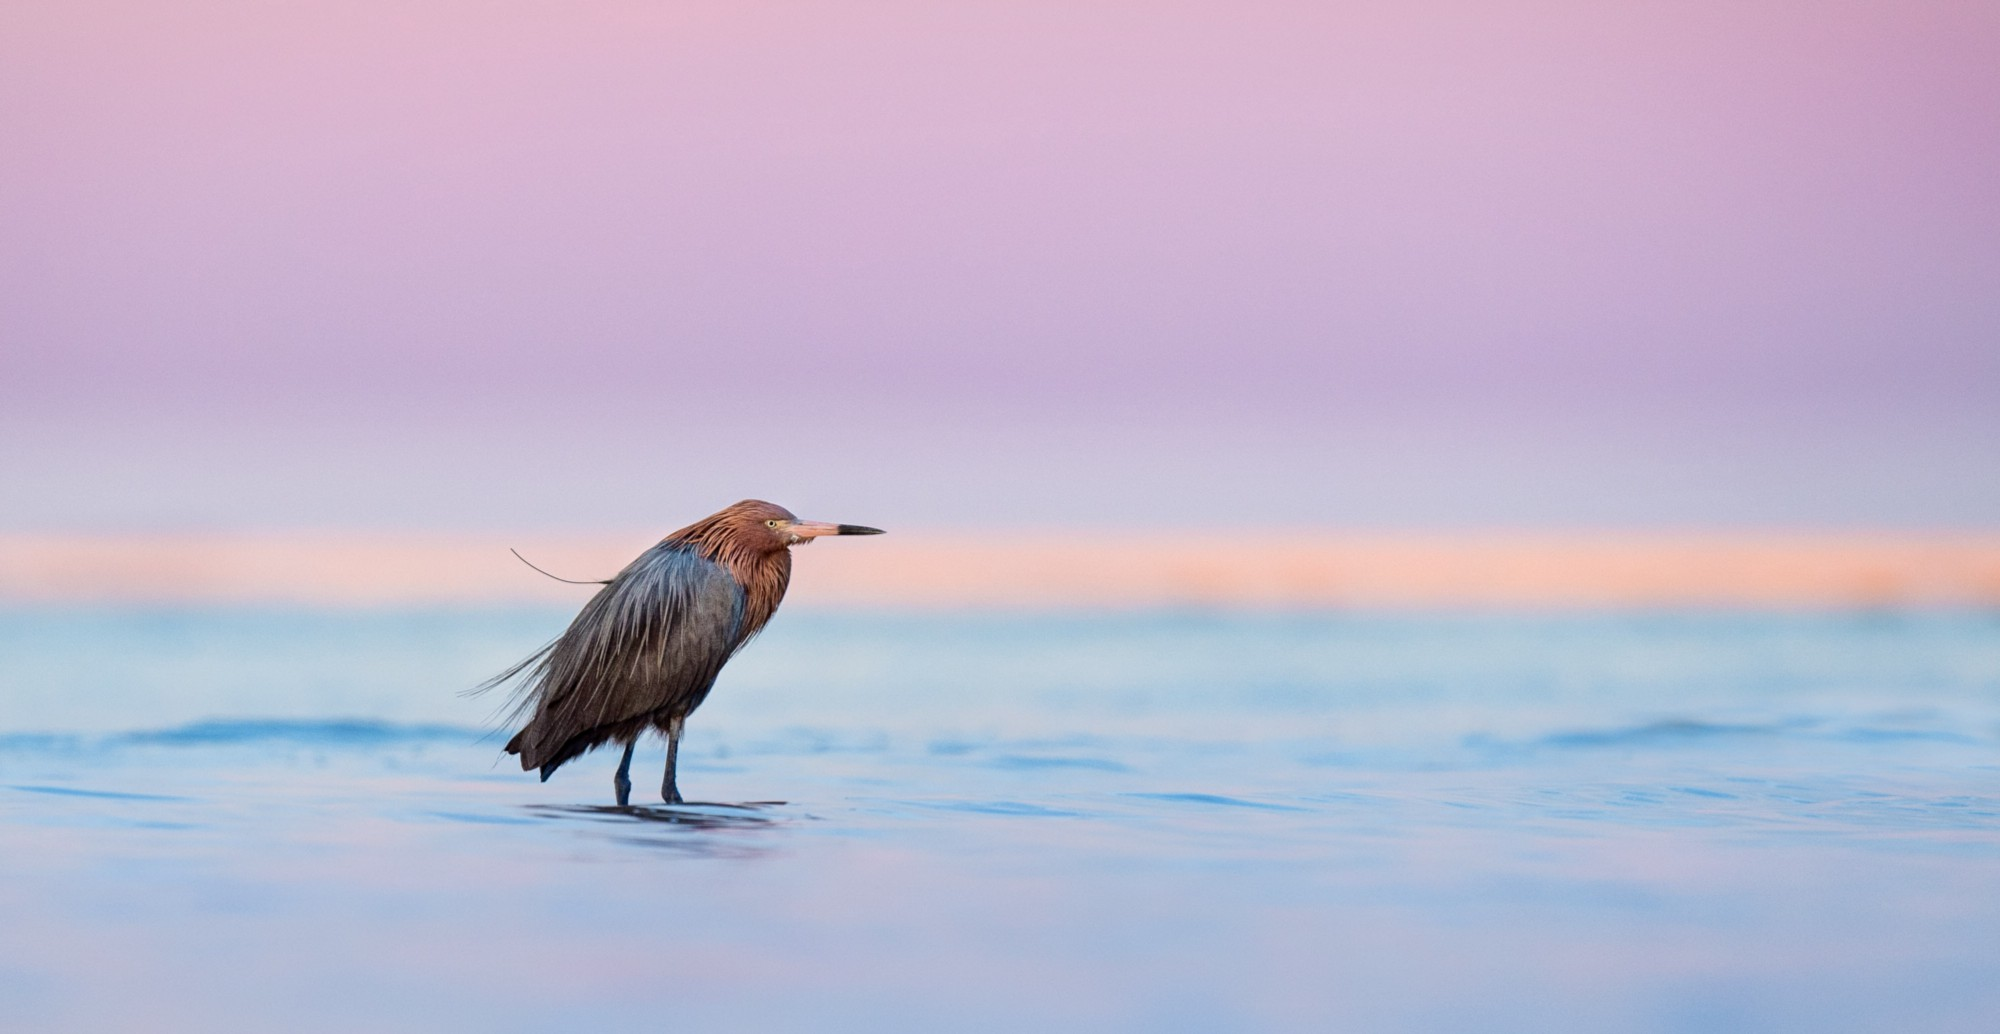 My Good Friend And Bird Photographer Scott Keys Had Told Me I Must Visit Bunche Beach While Was In Florida So Ended Up Making It First Main Outing